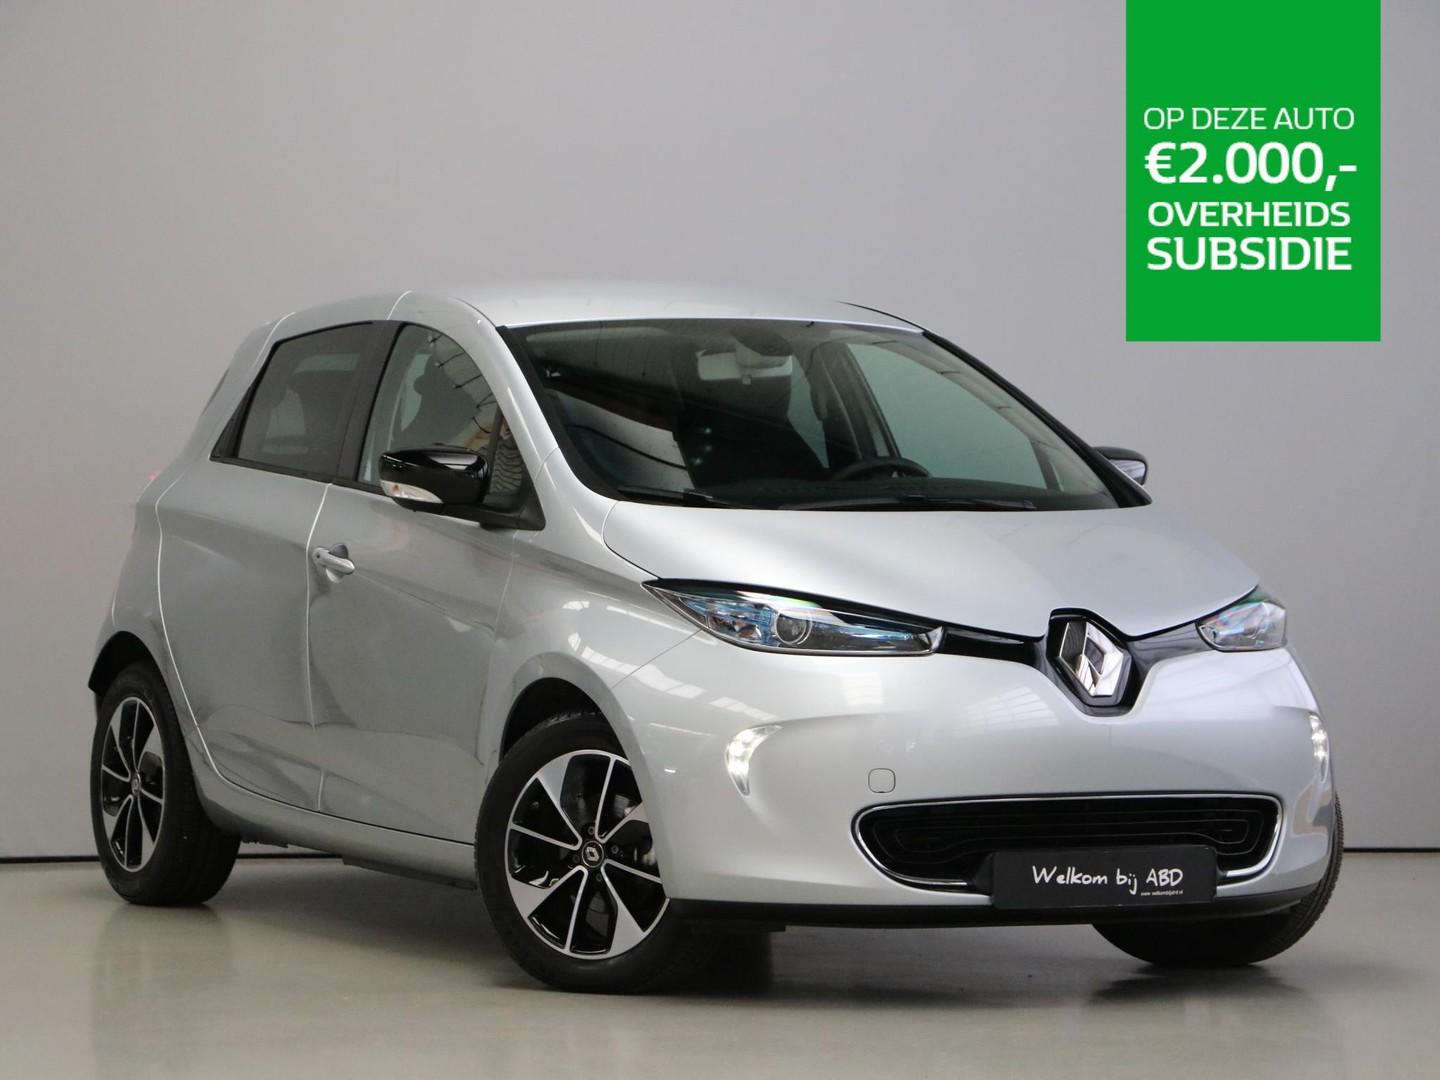 Renault Zoe R110 intens 41 kwh